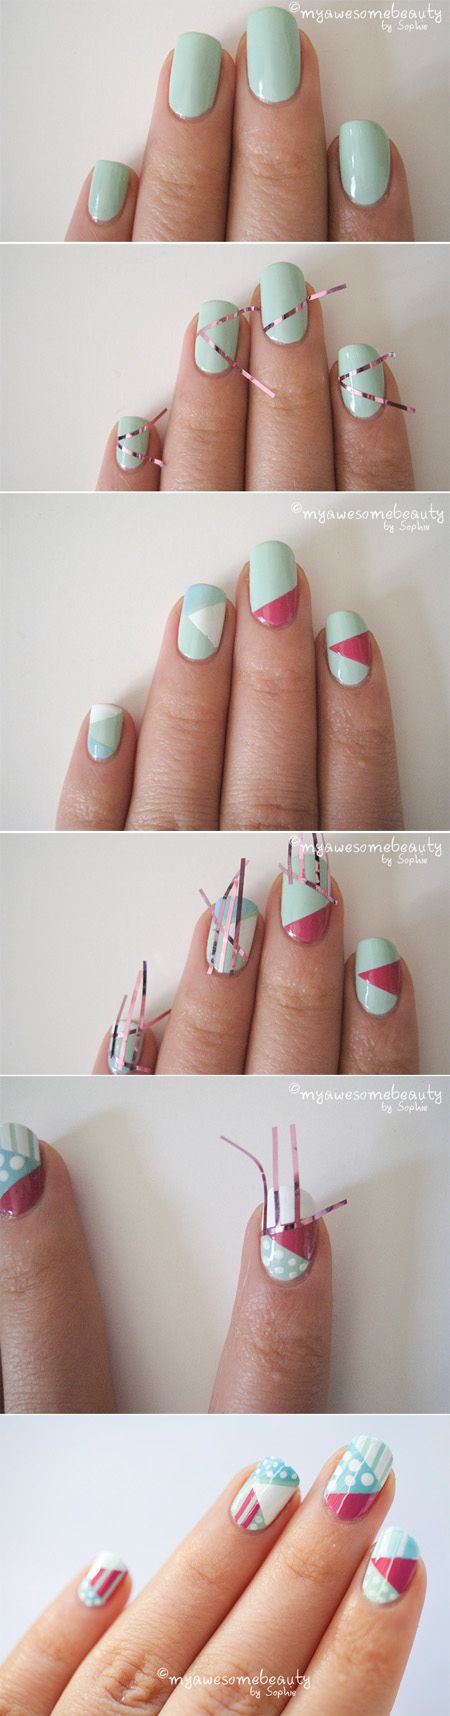 Graphic Nail Art By Myawesomebeauty Is Just Too Cool Get The Look